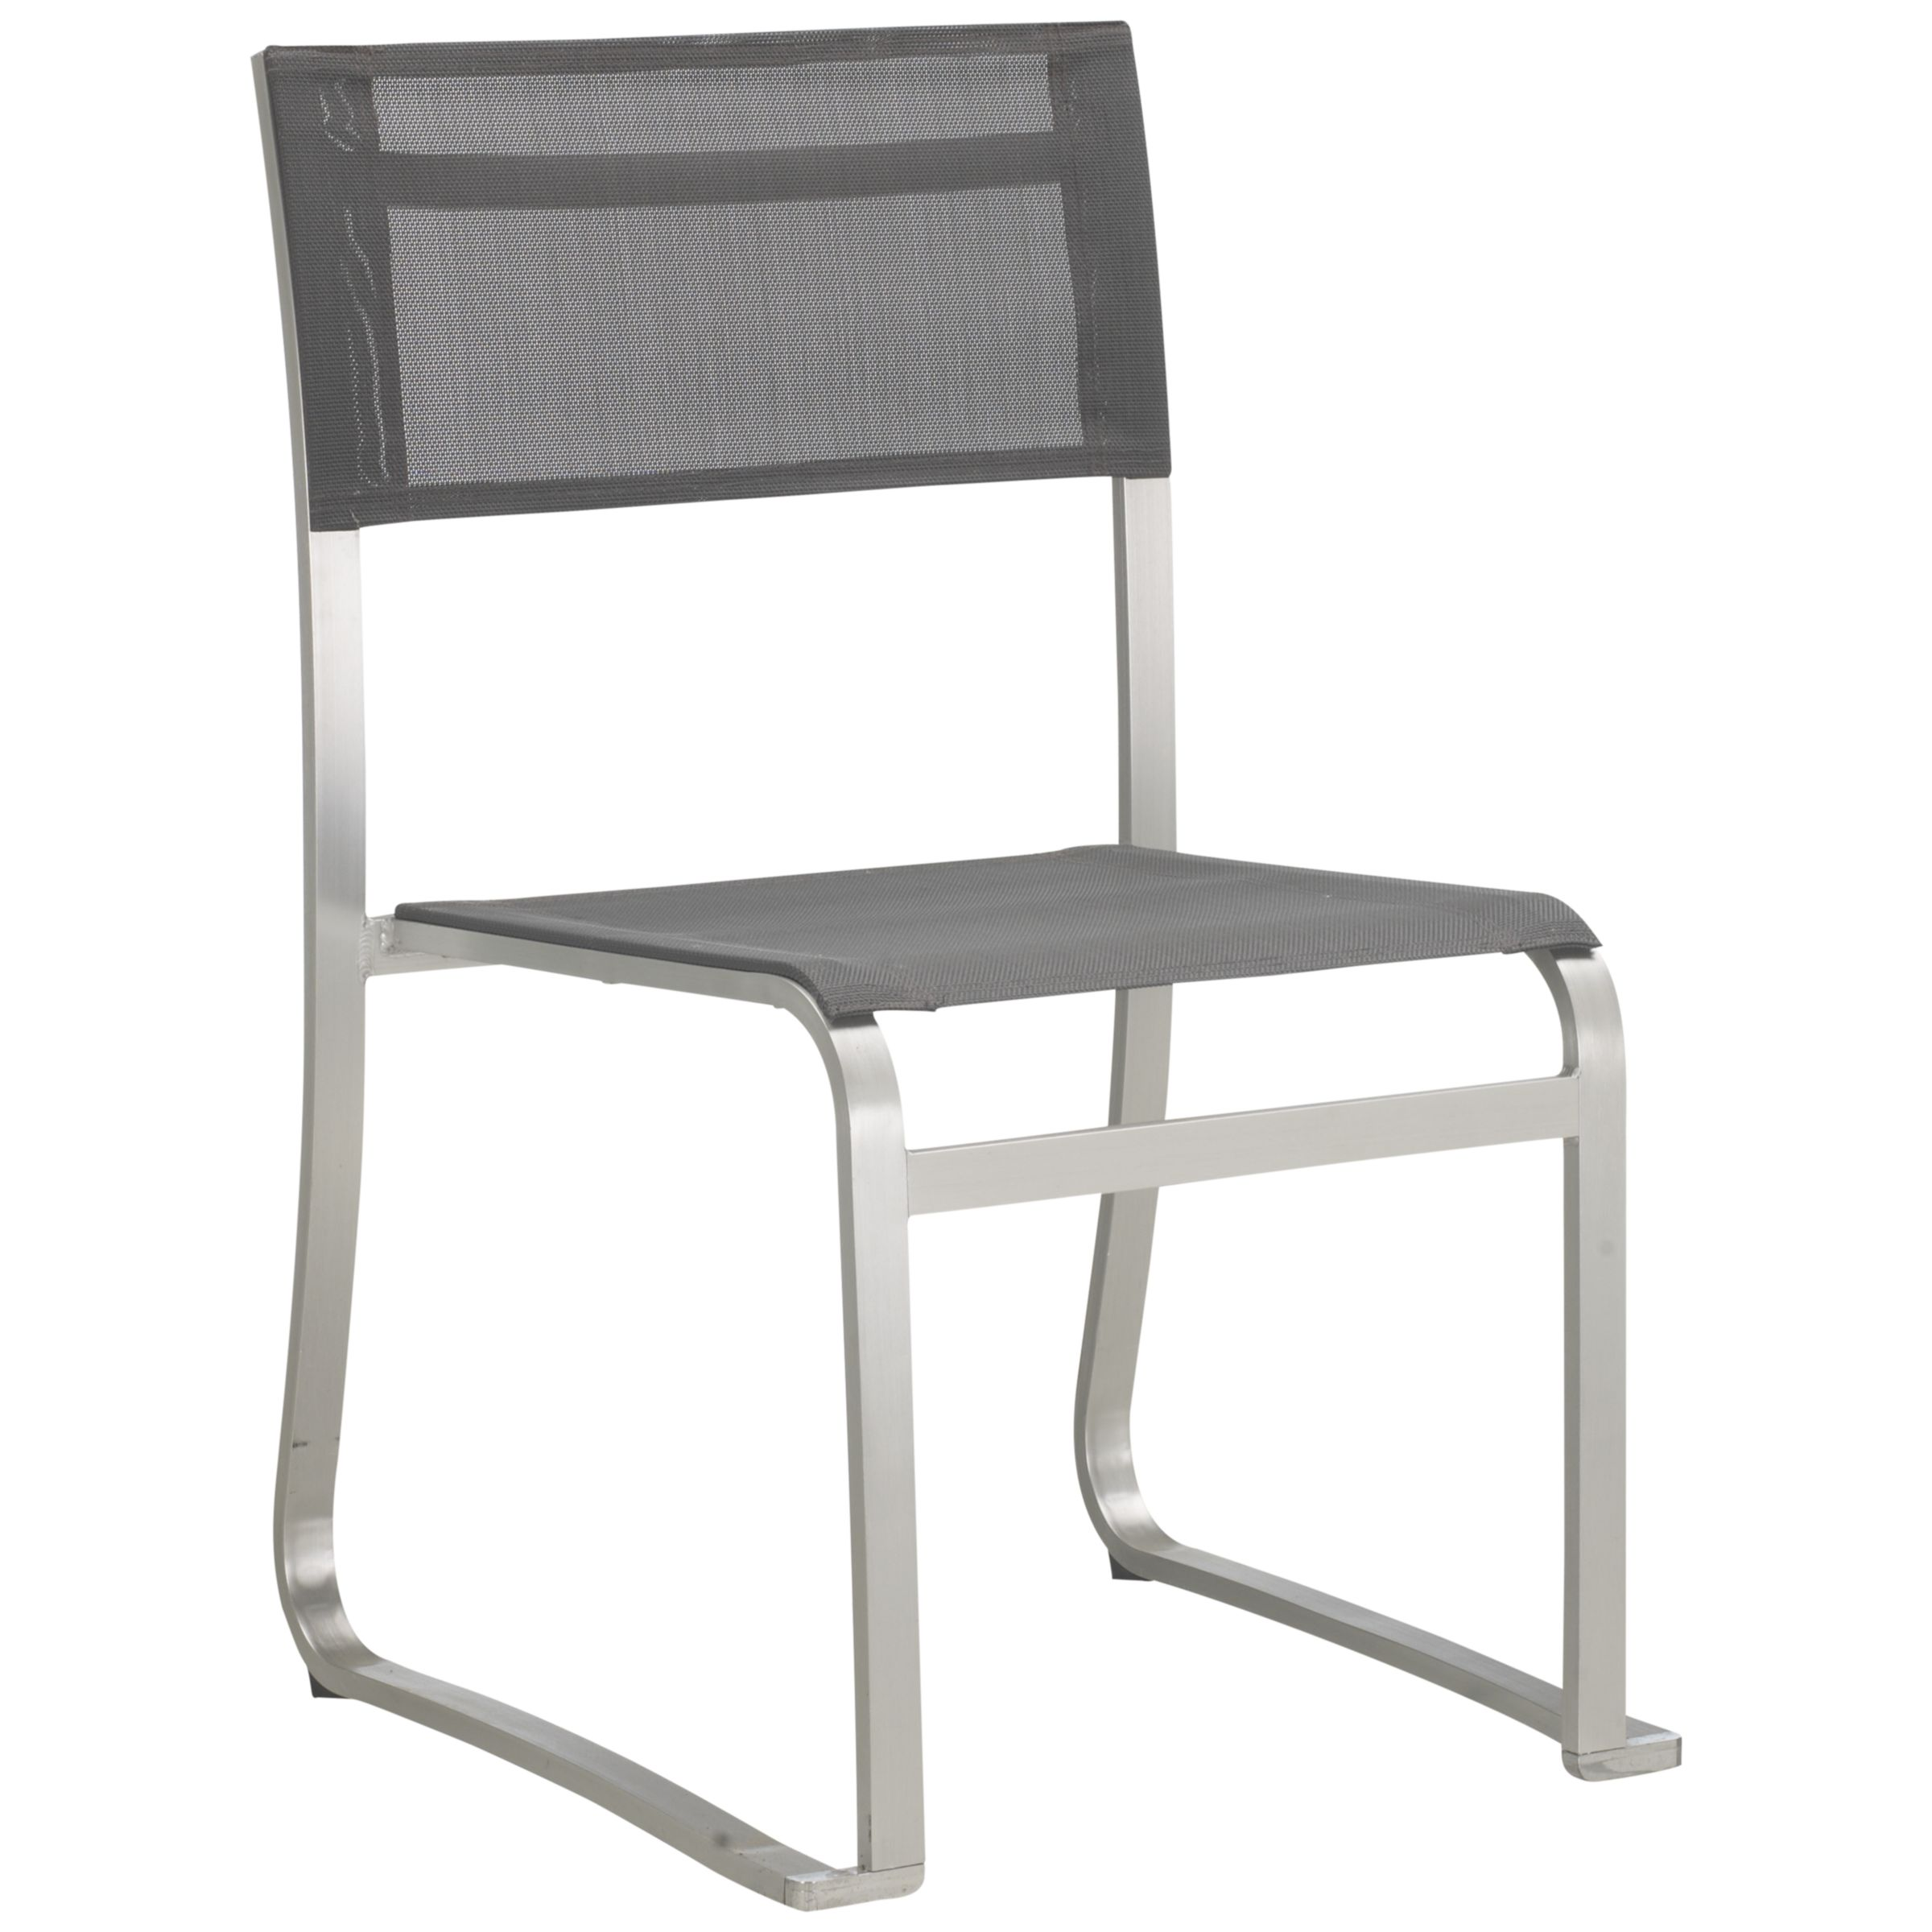 John Lewis Zone Outdoor Dining Chair